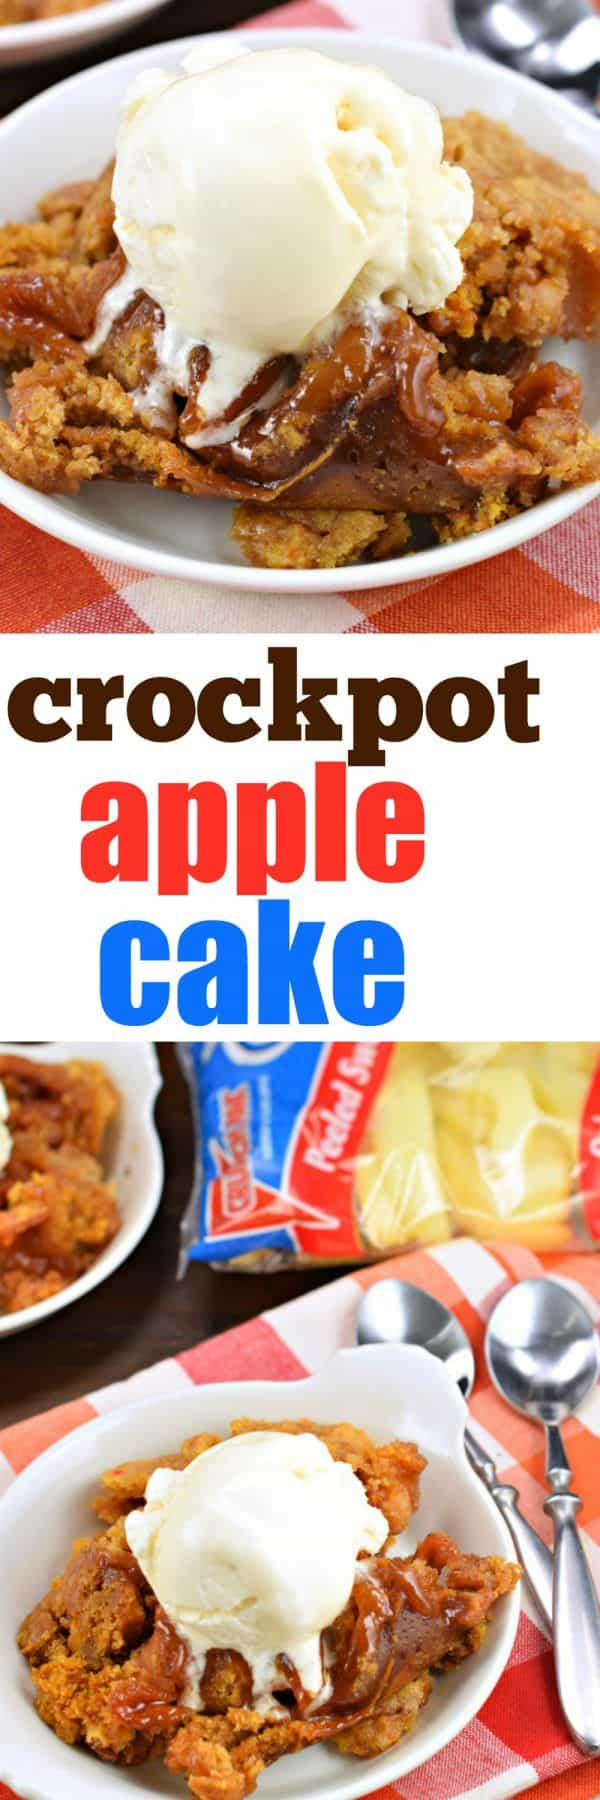 This Slow Cooker Apple Cake is as easy as tossing a few ingredients into your crockpot and letting it do it's thing! Top it with a big scoop of ice cream and serve warm!